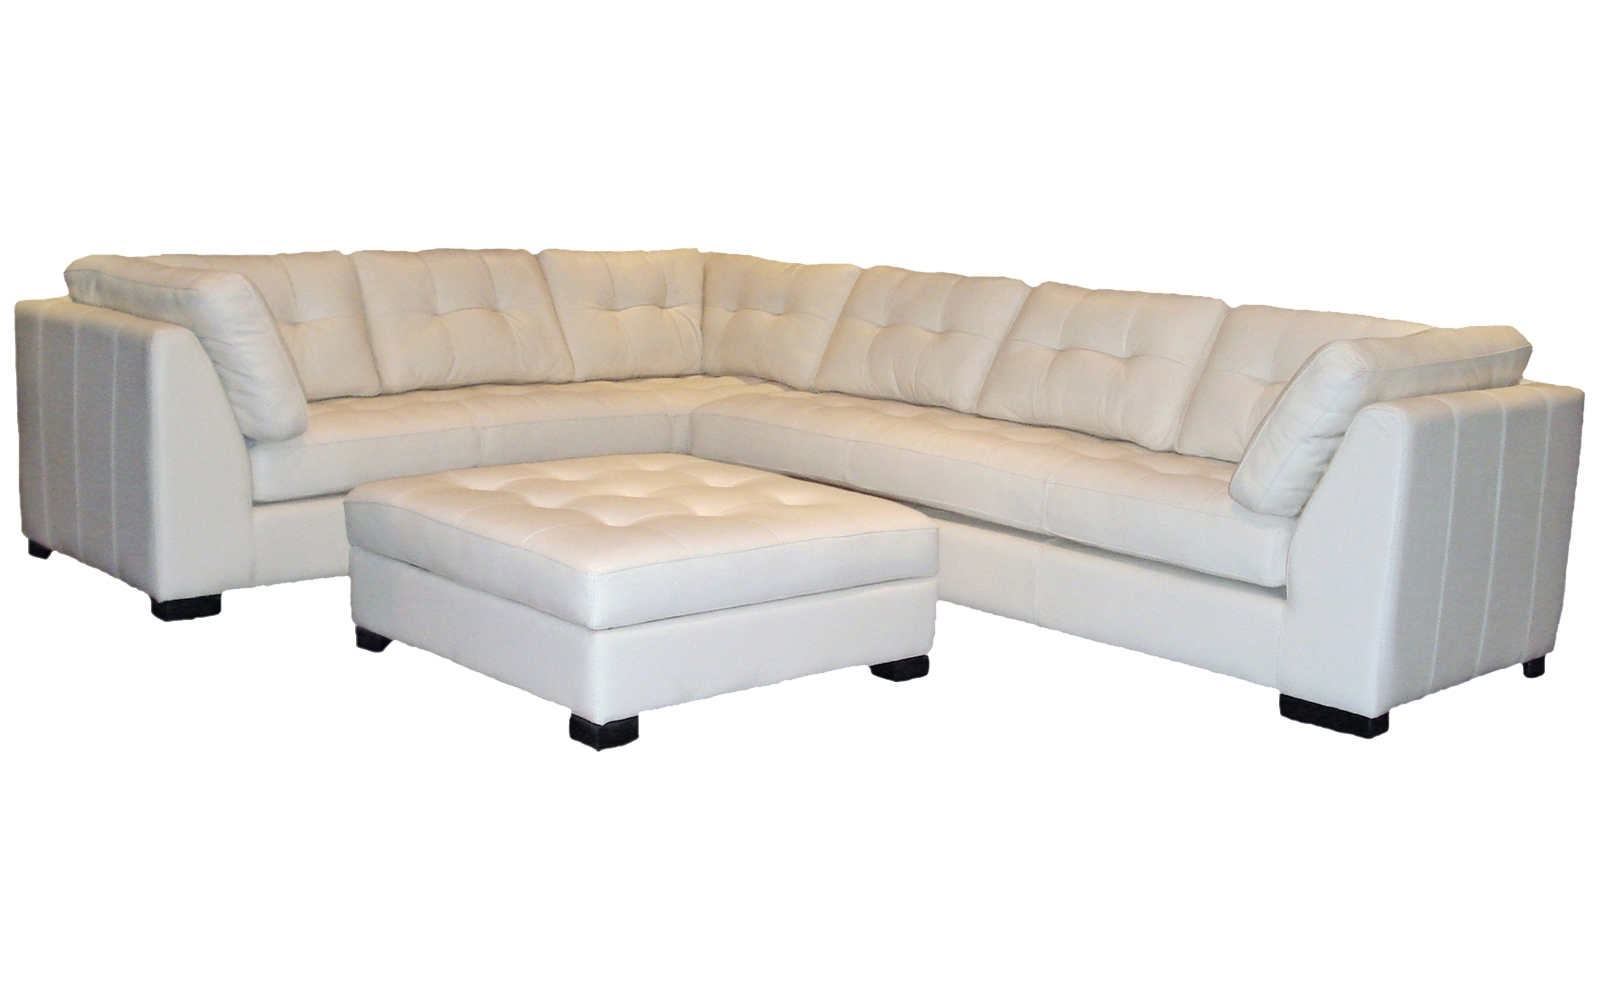 Famous Newport Sofas In Newport Sectionalomnia Leather (View 2 of 20)